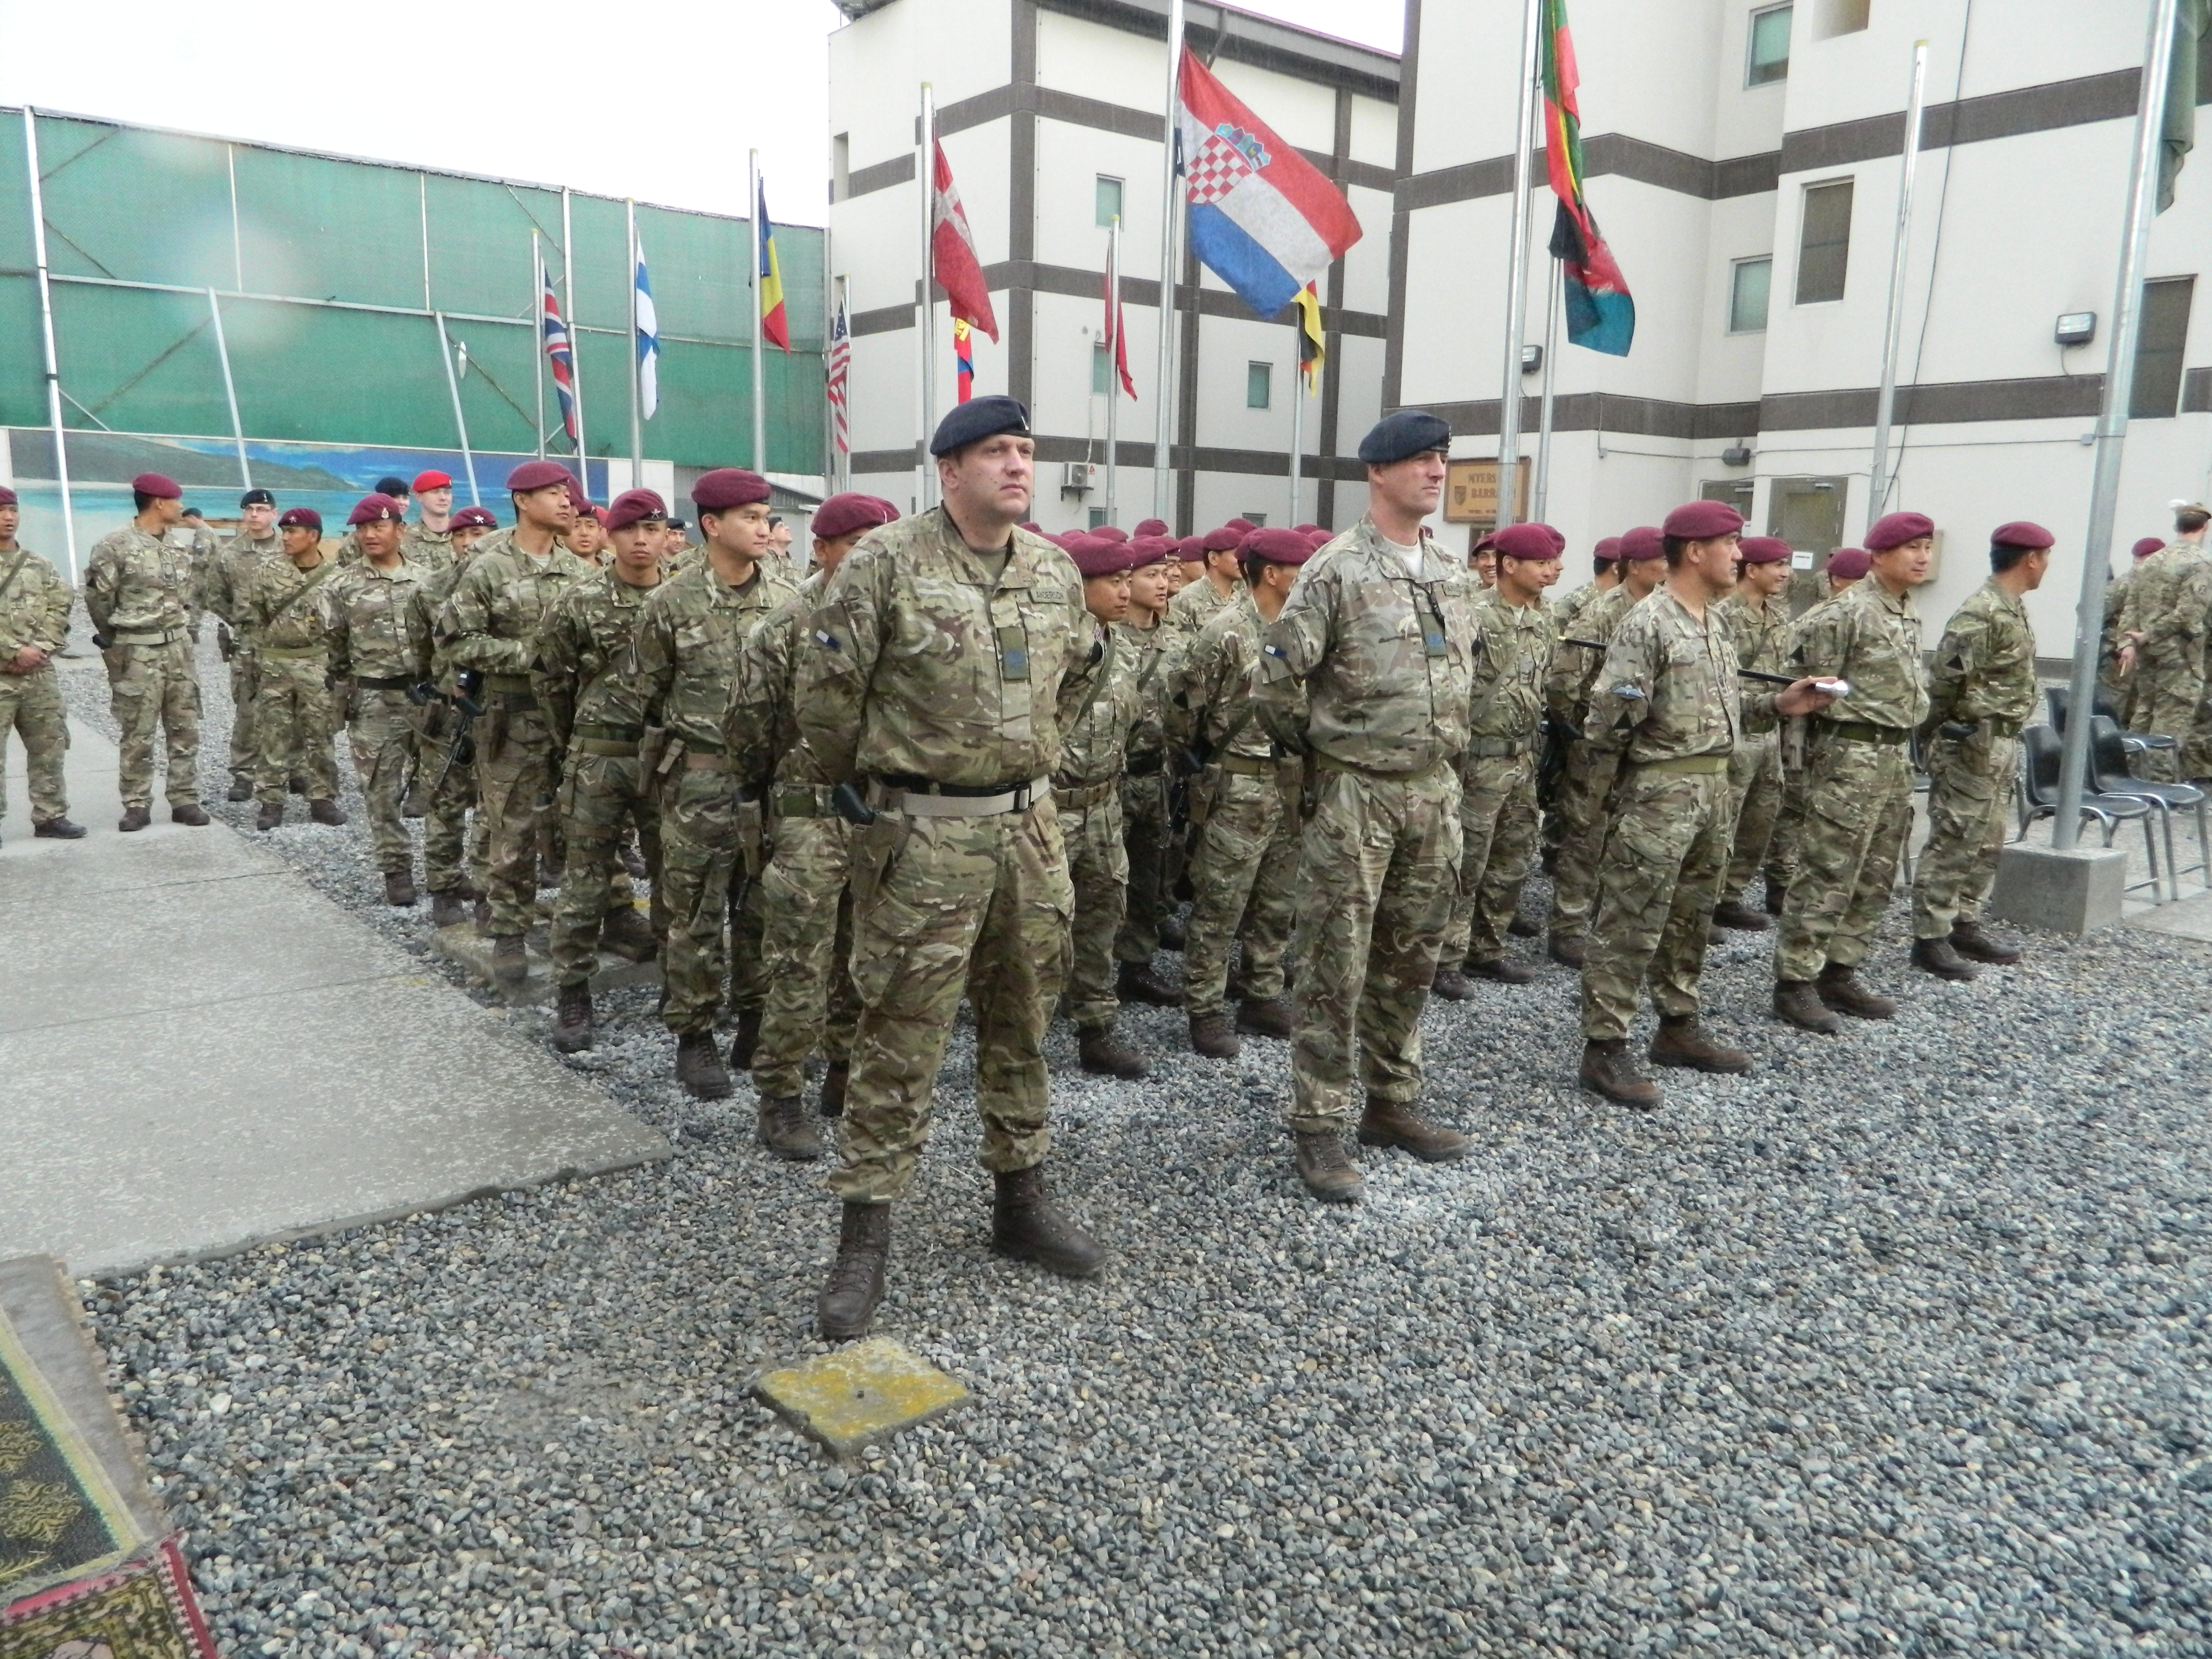 Gurkha_soldiers_assembled_in_their_new_home_in_Kabul